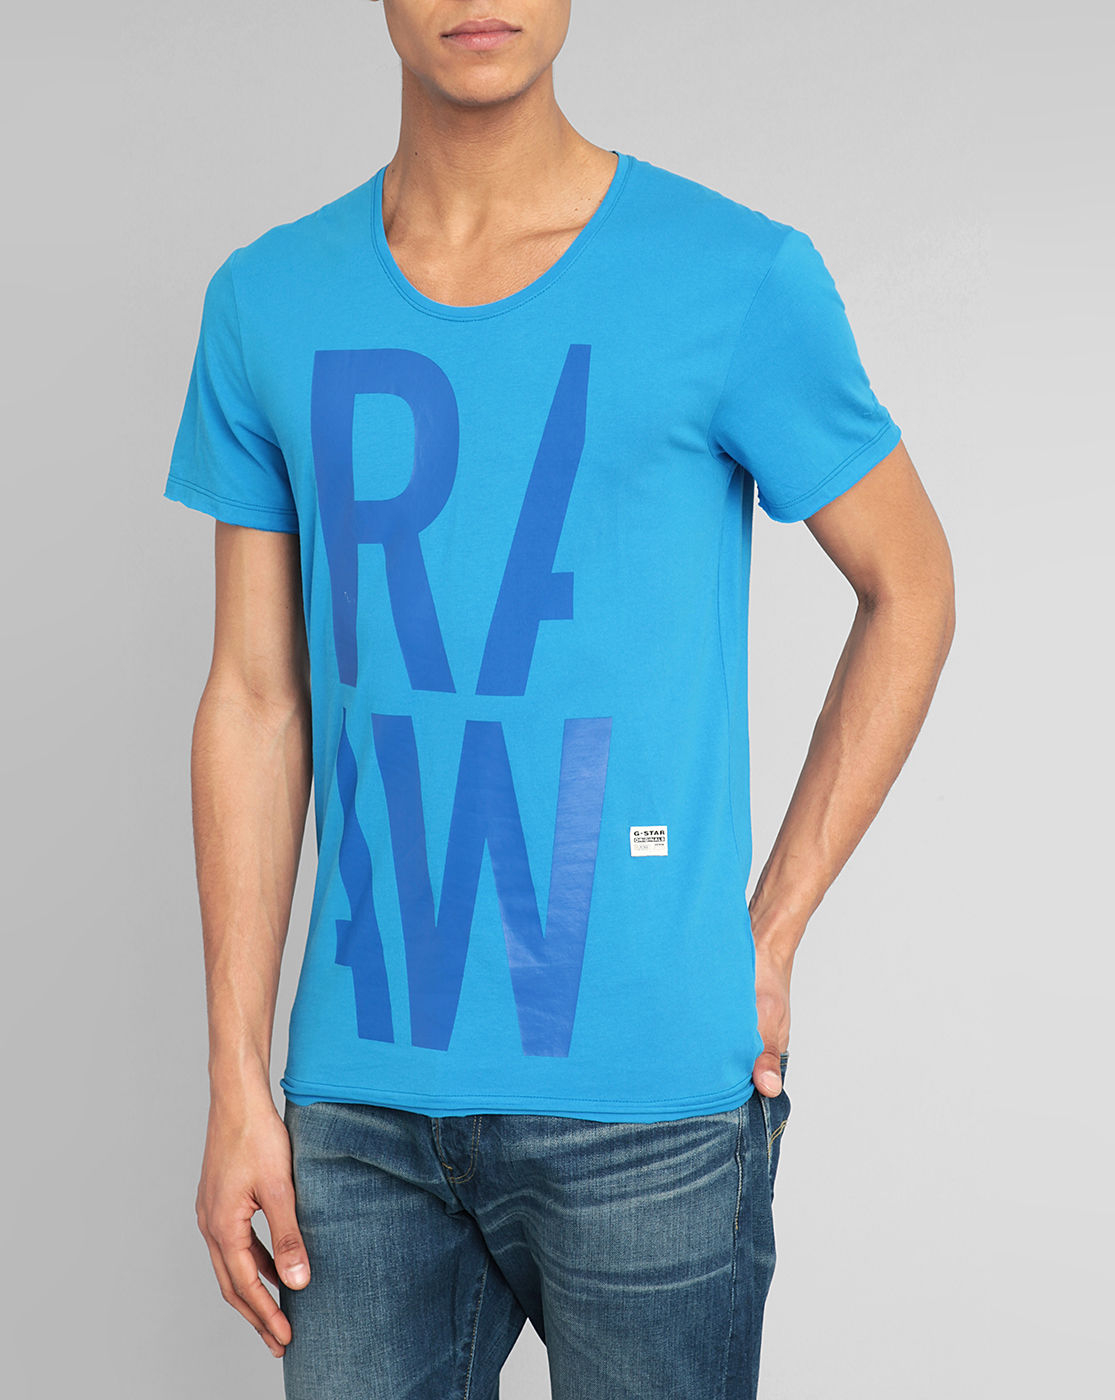 star raw blue persacker raw t shirt in blue for men lyst. Black Bedroom Furniture Sets. Home Design Ideas